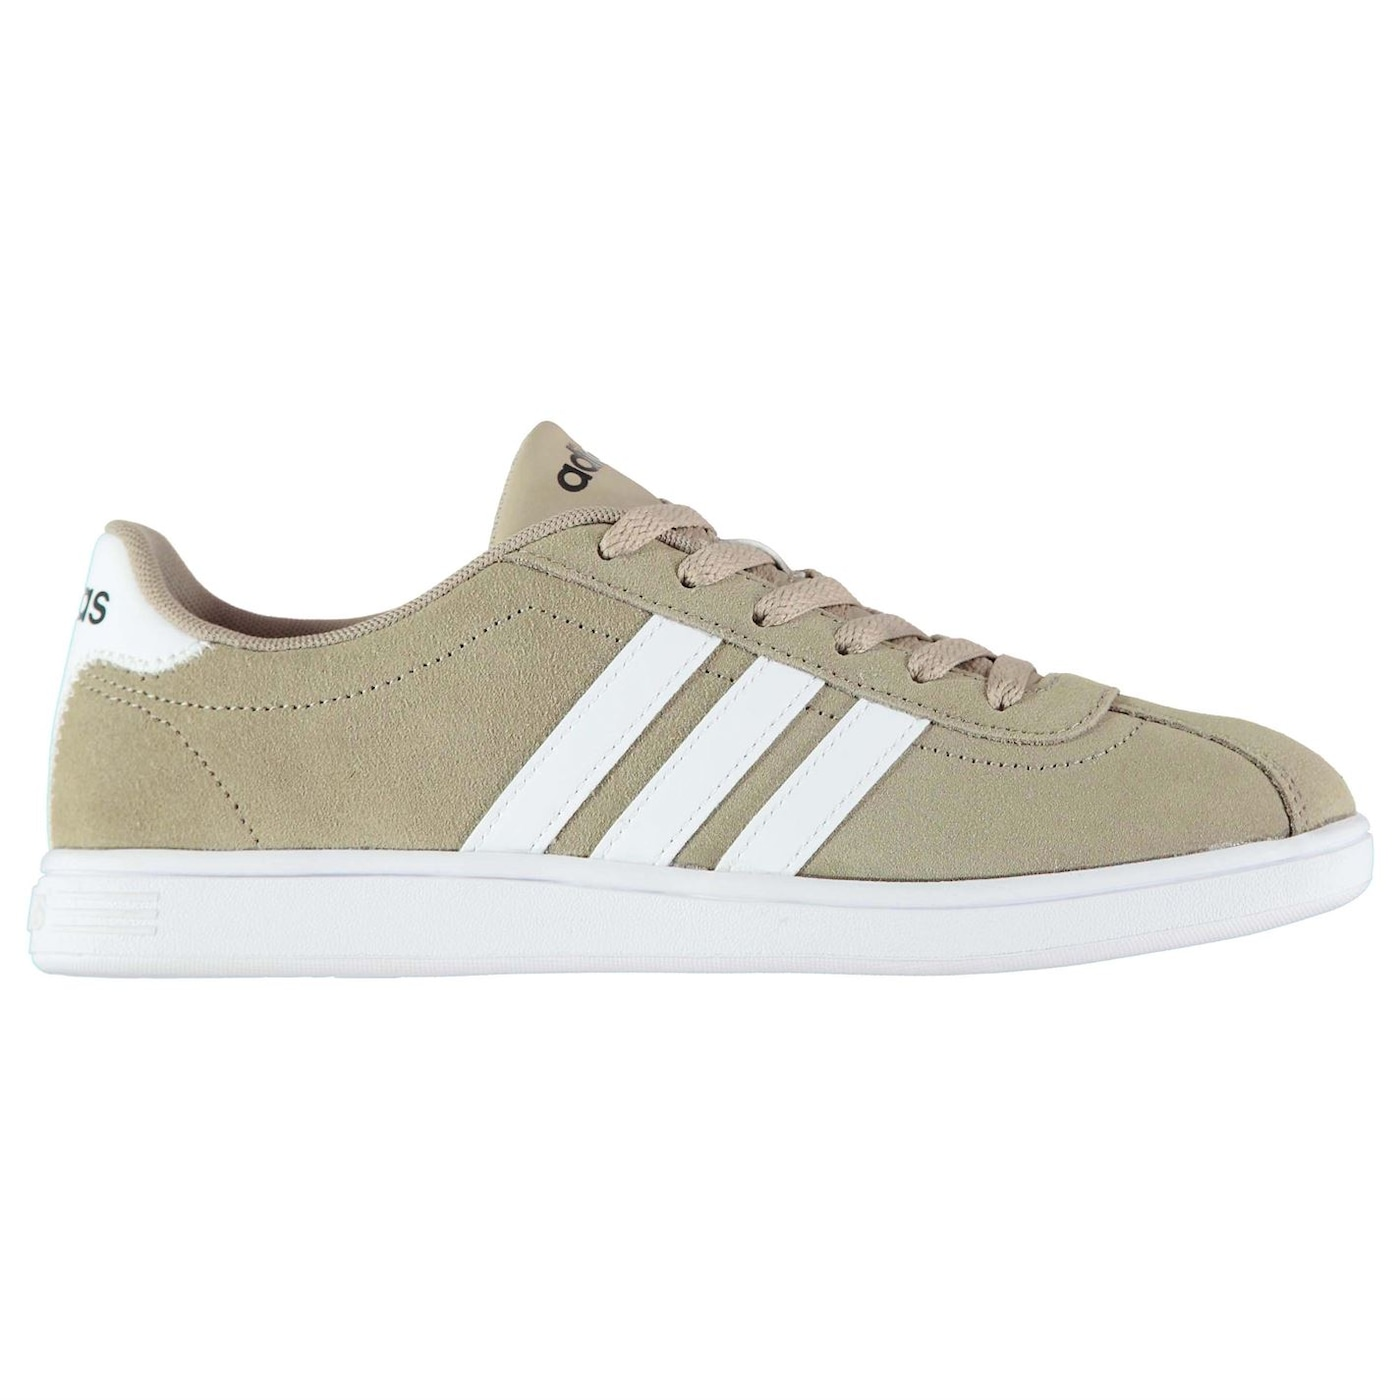 Adidas VL Court Suede Trainers Mens